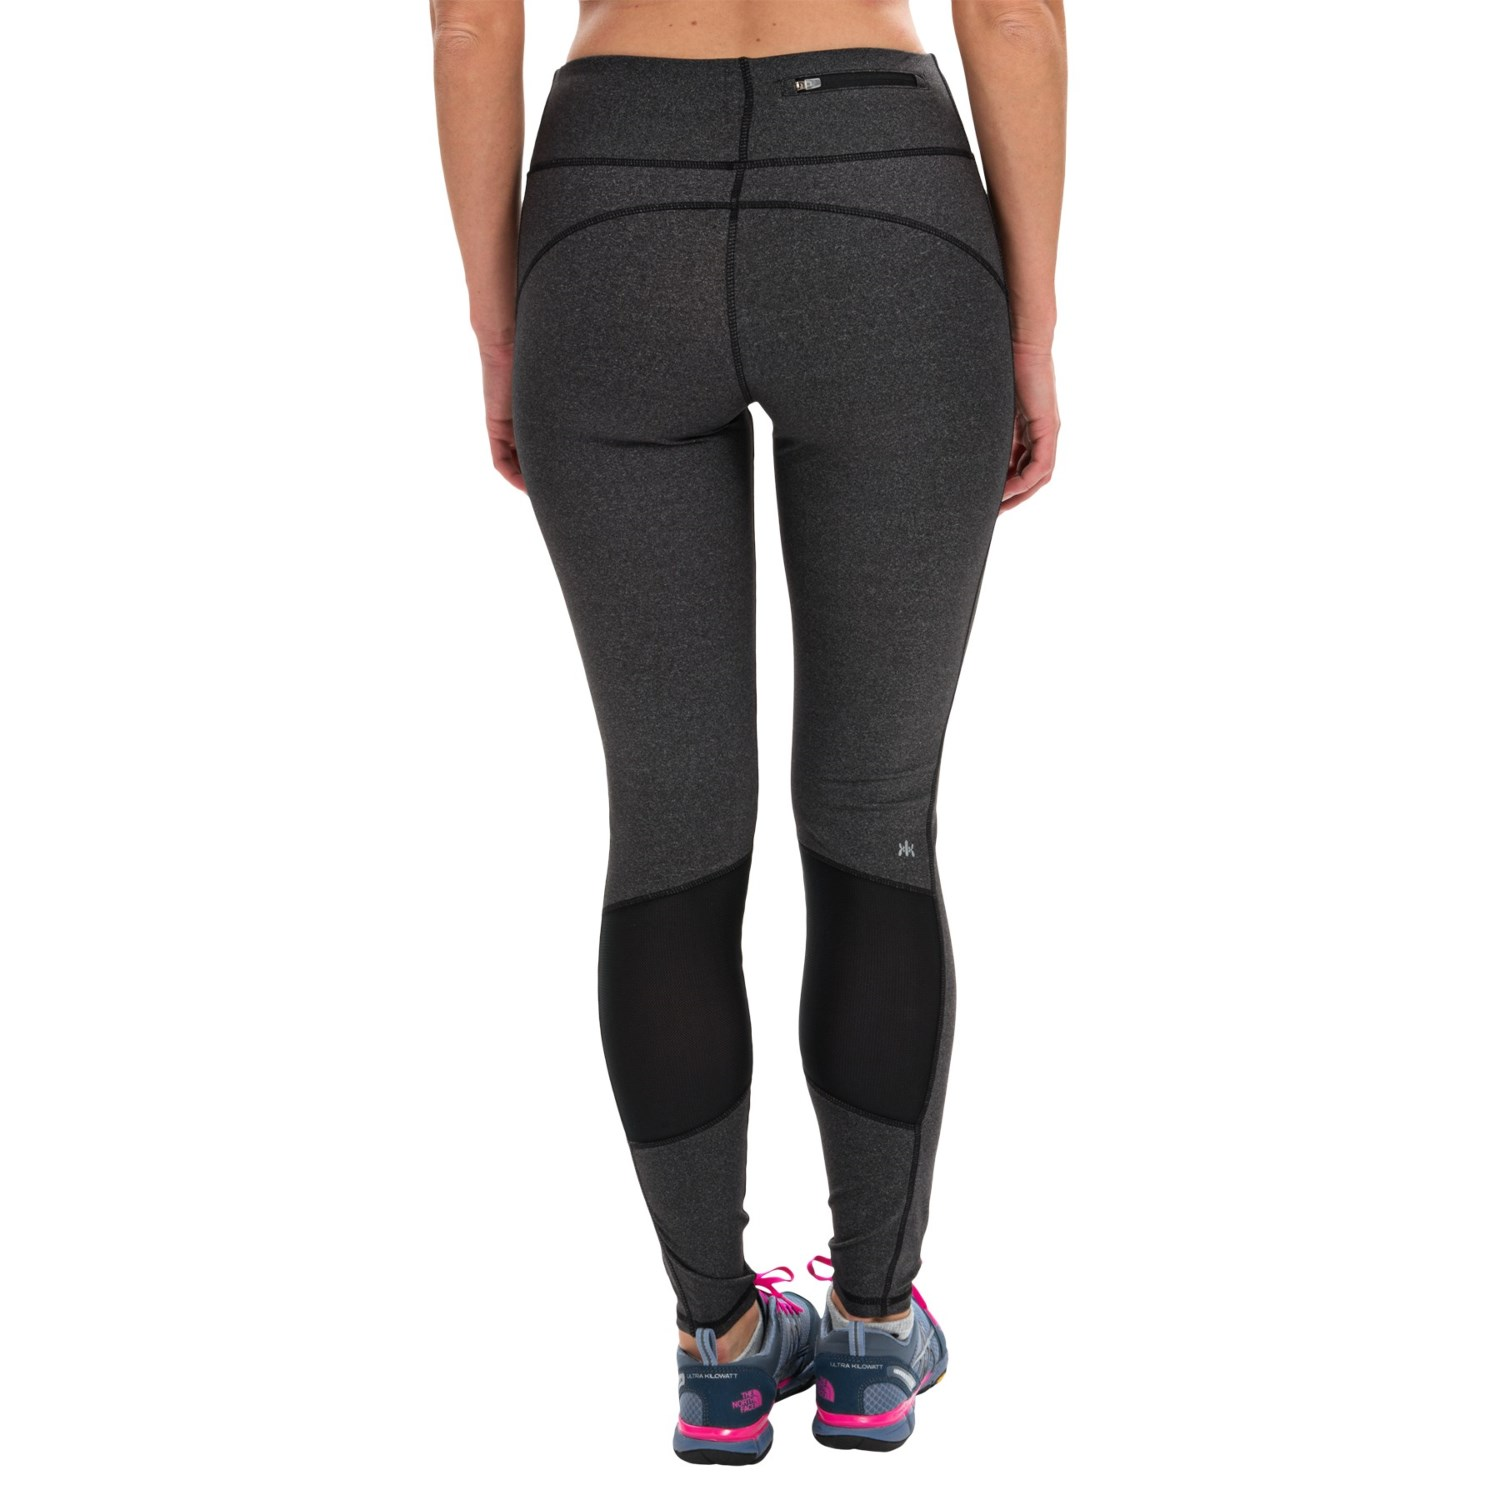 Kyodan Technical Running Tights (For Women)